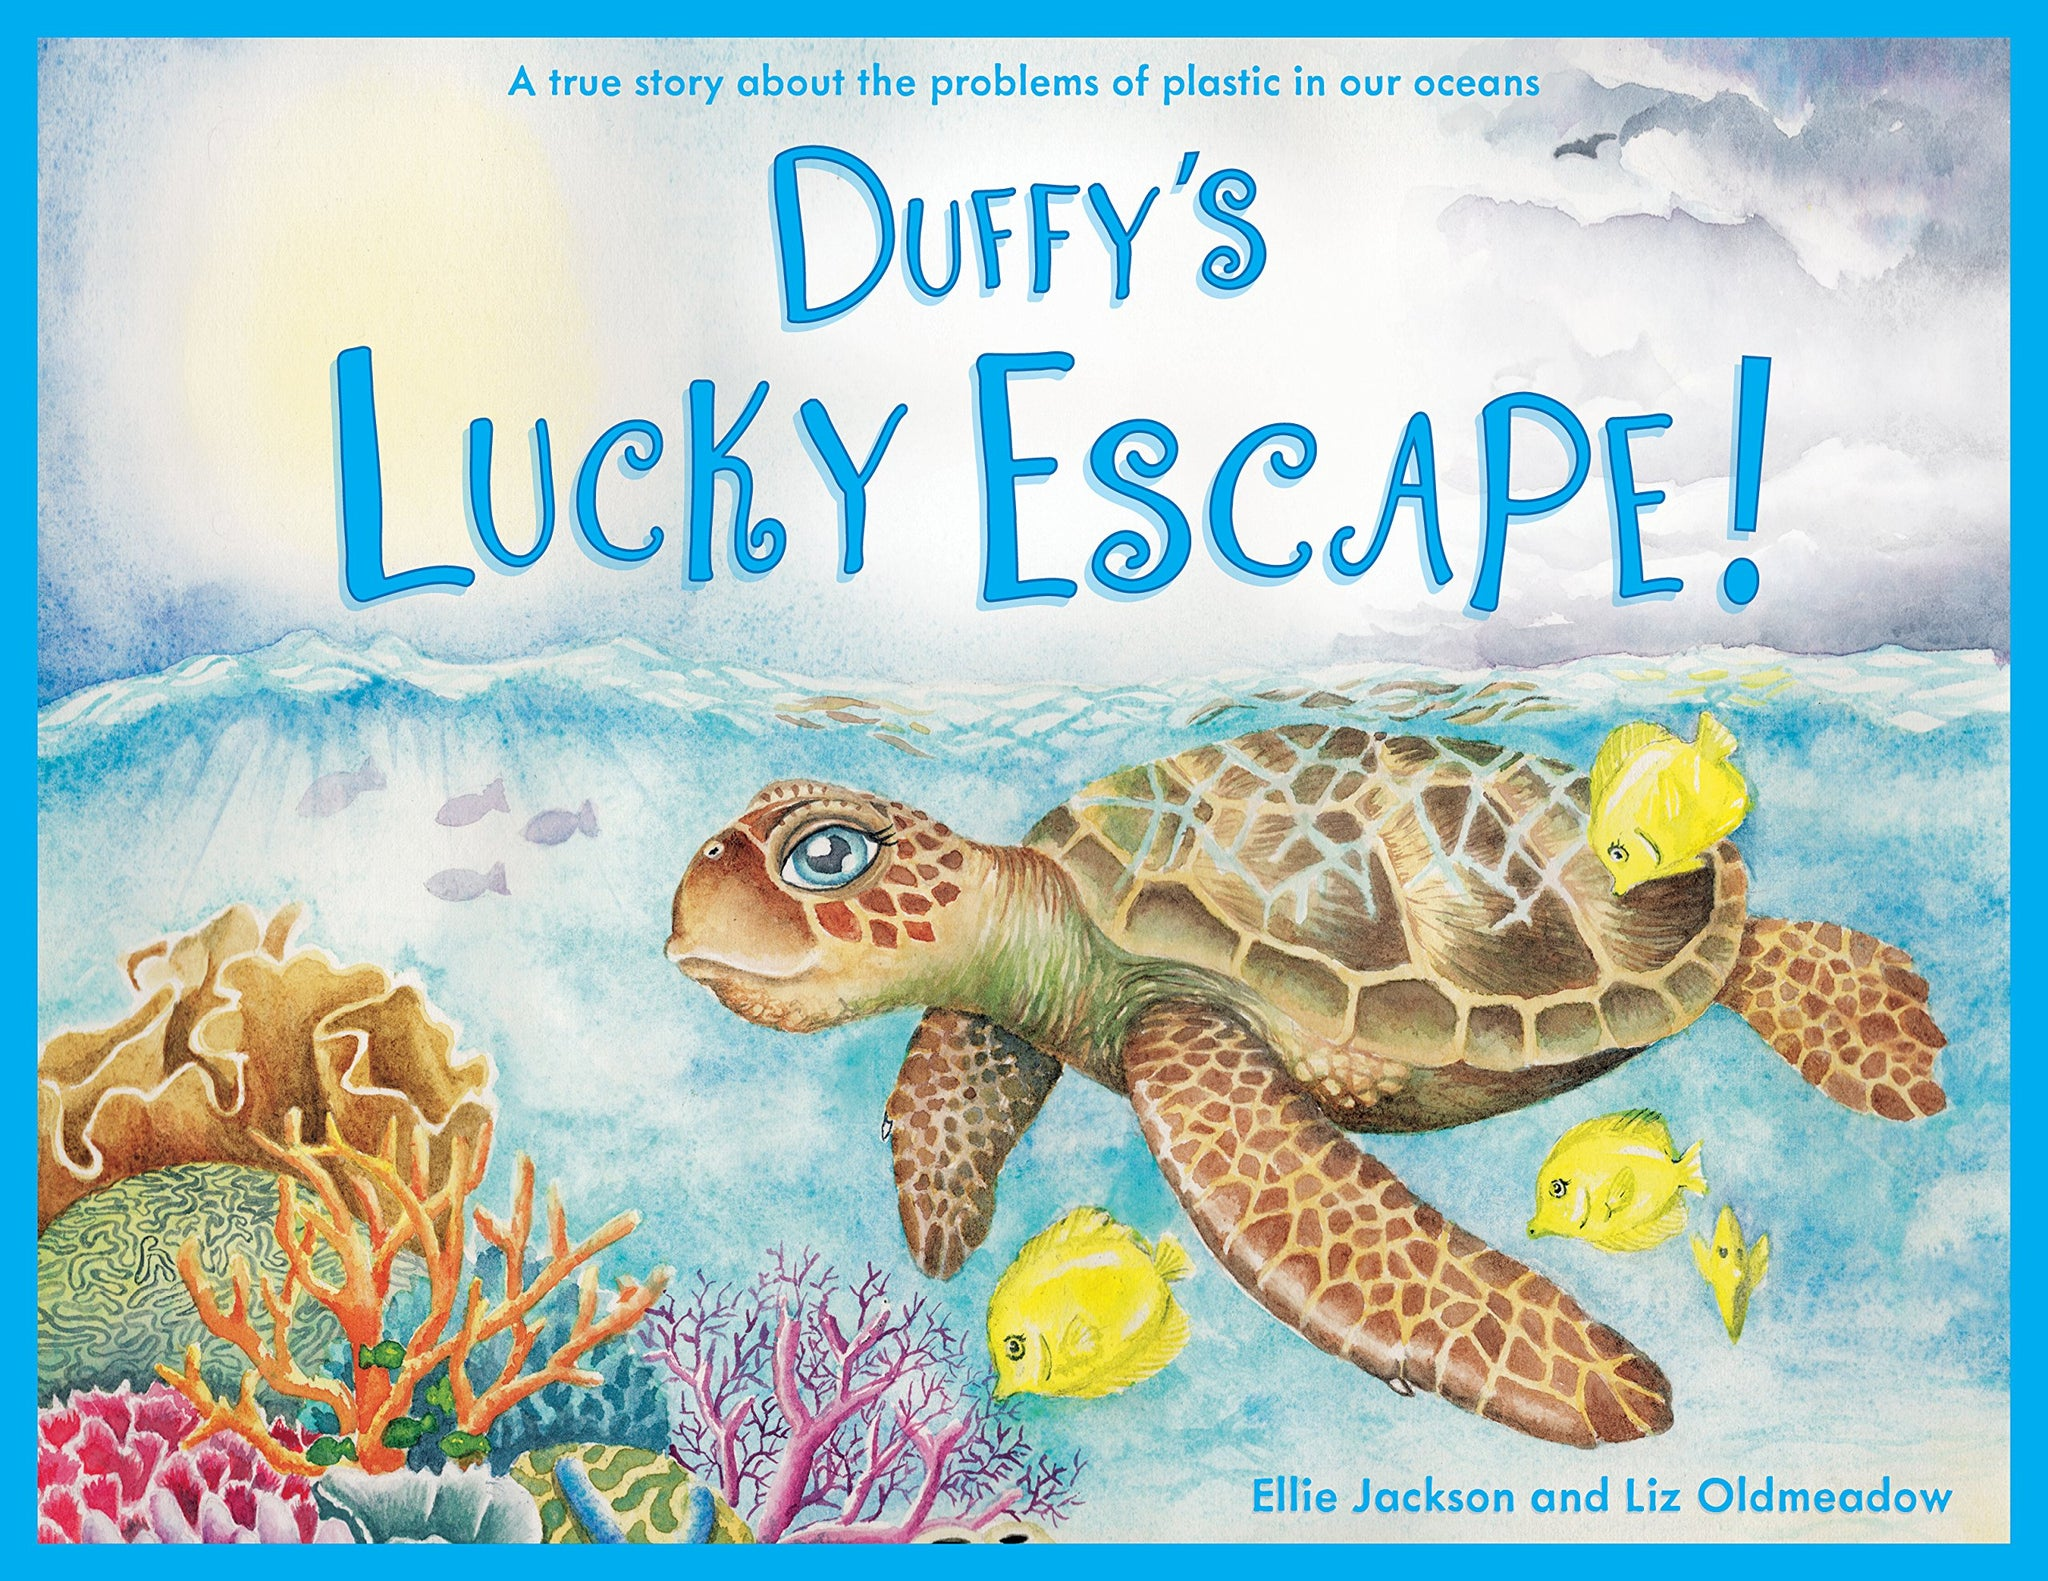 Book Duffy's Lucky Escape by Ellie Jackson